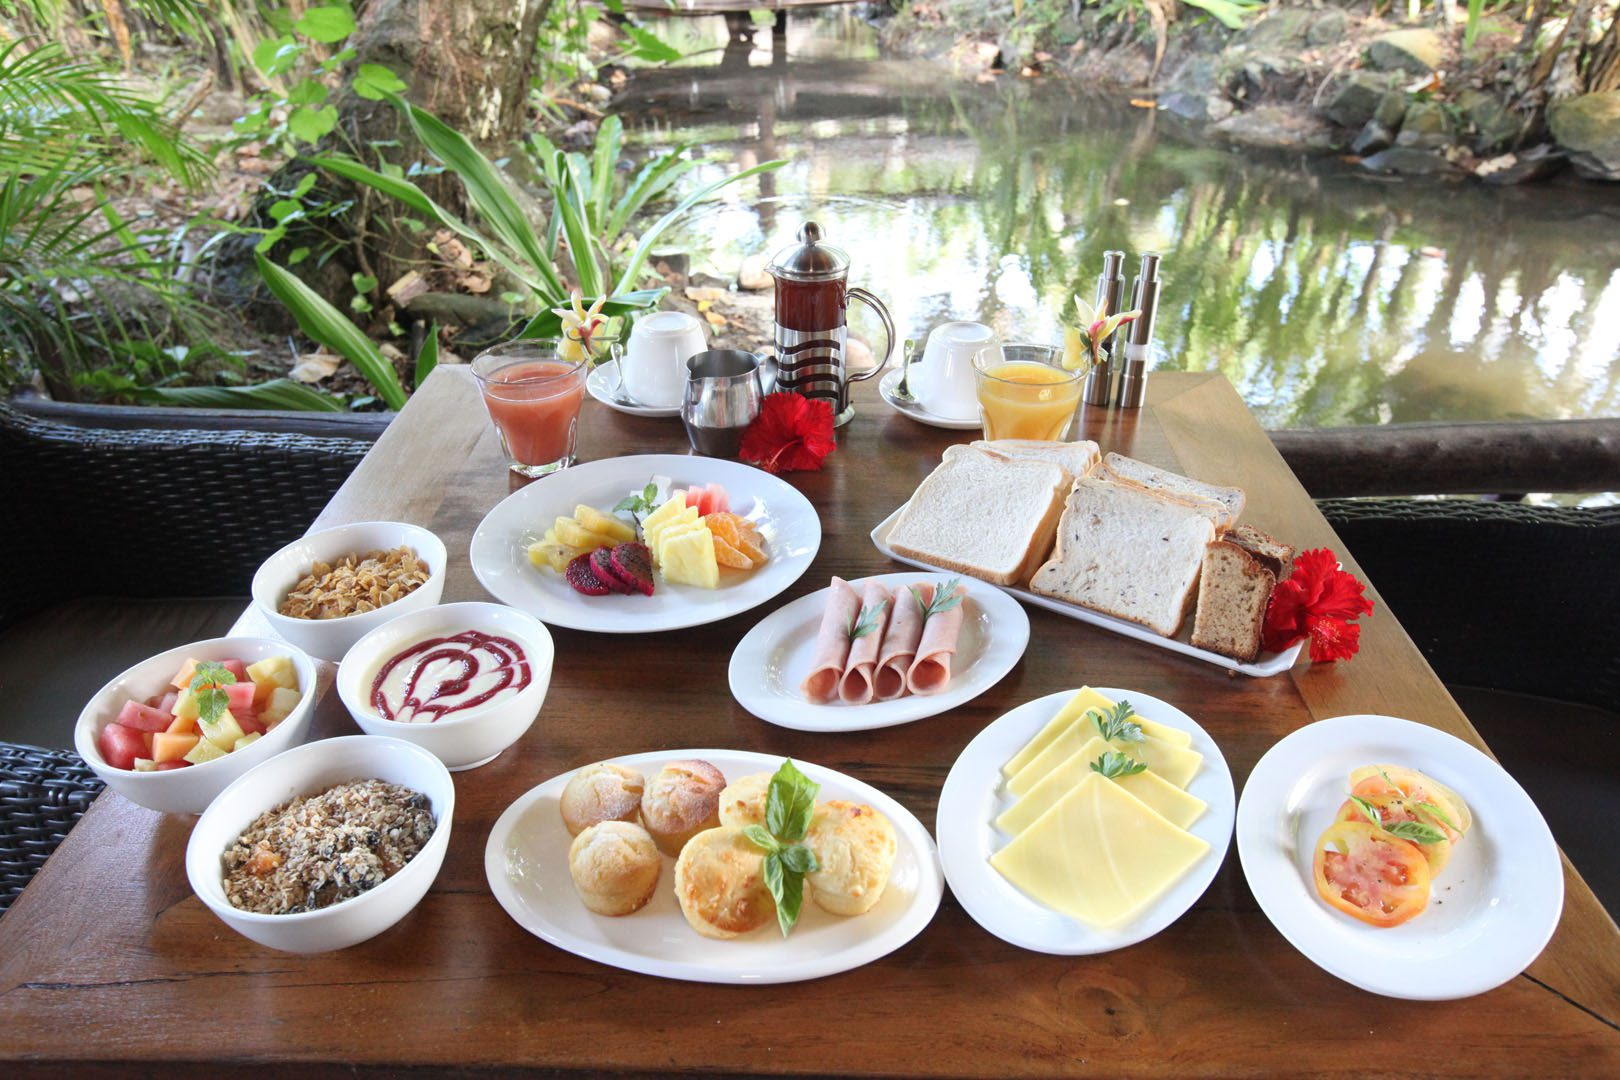 A delicious tropical continental breakfast selection set up featuring variety of breads, pastries, tropical fruits, ham and cheese along with a selection of coffee, tea and fruit juice